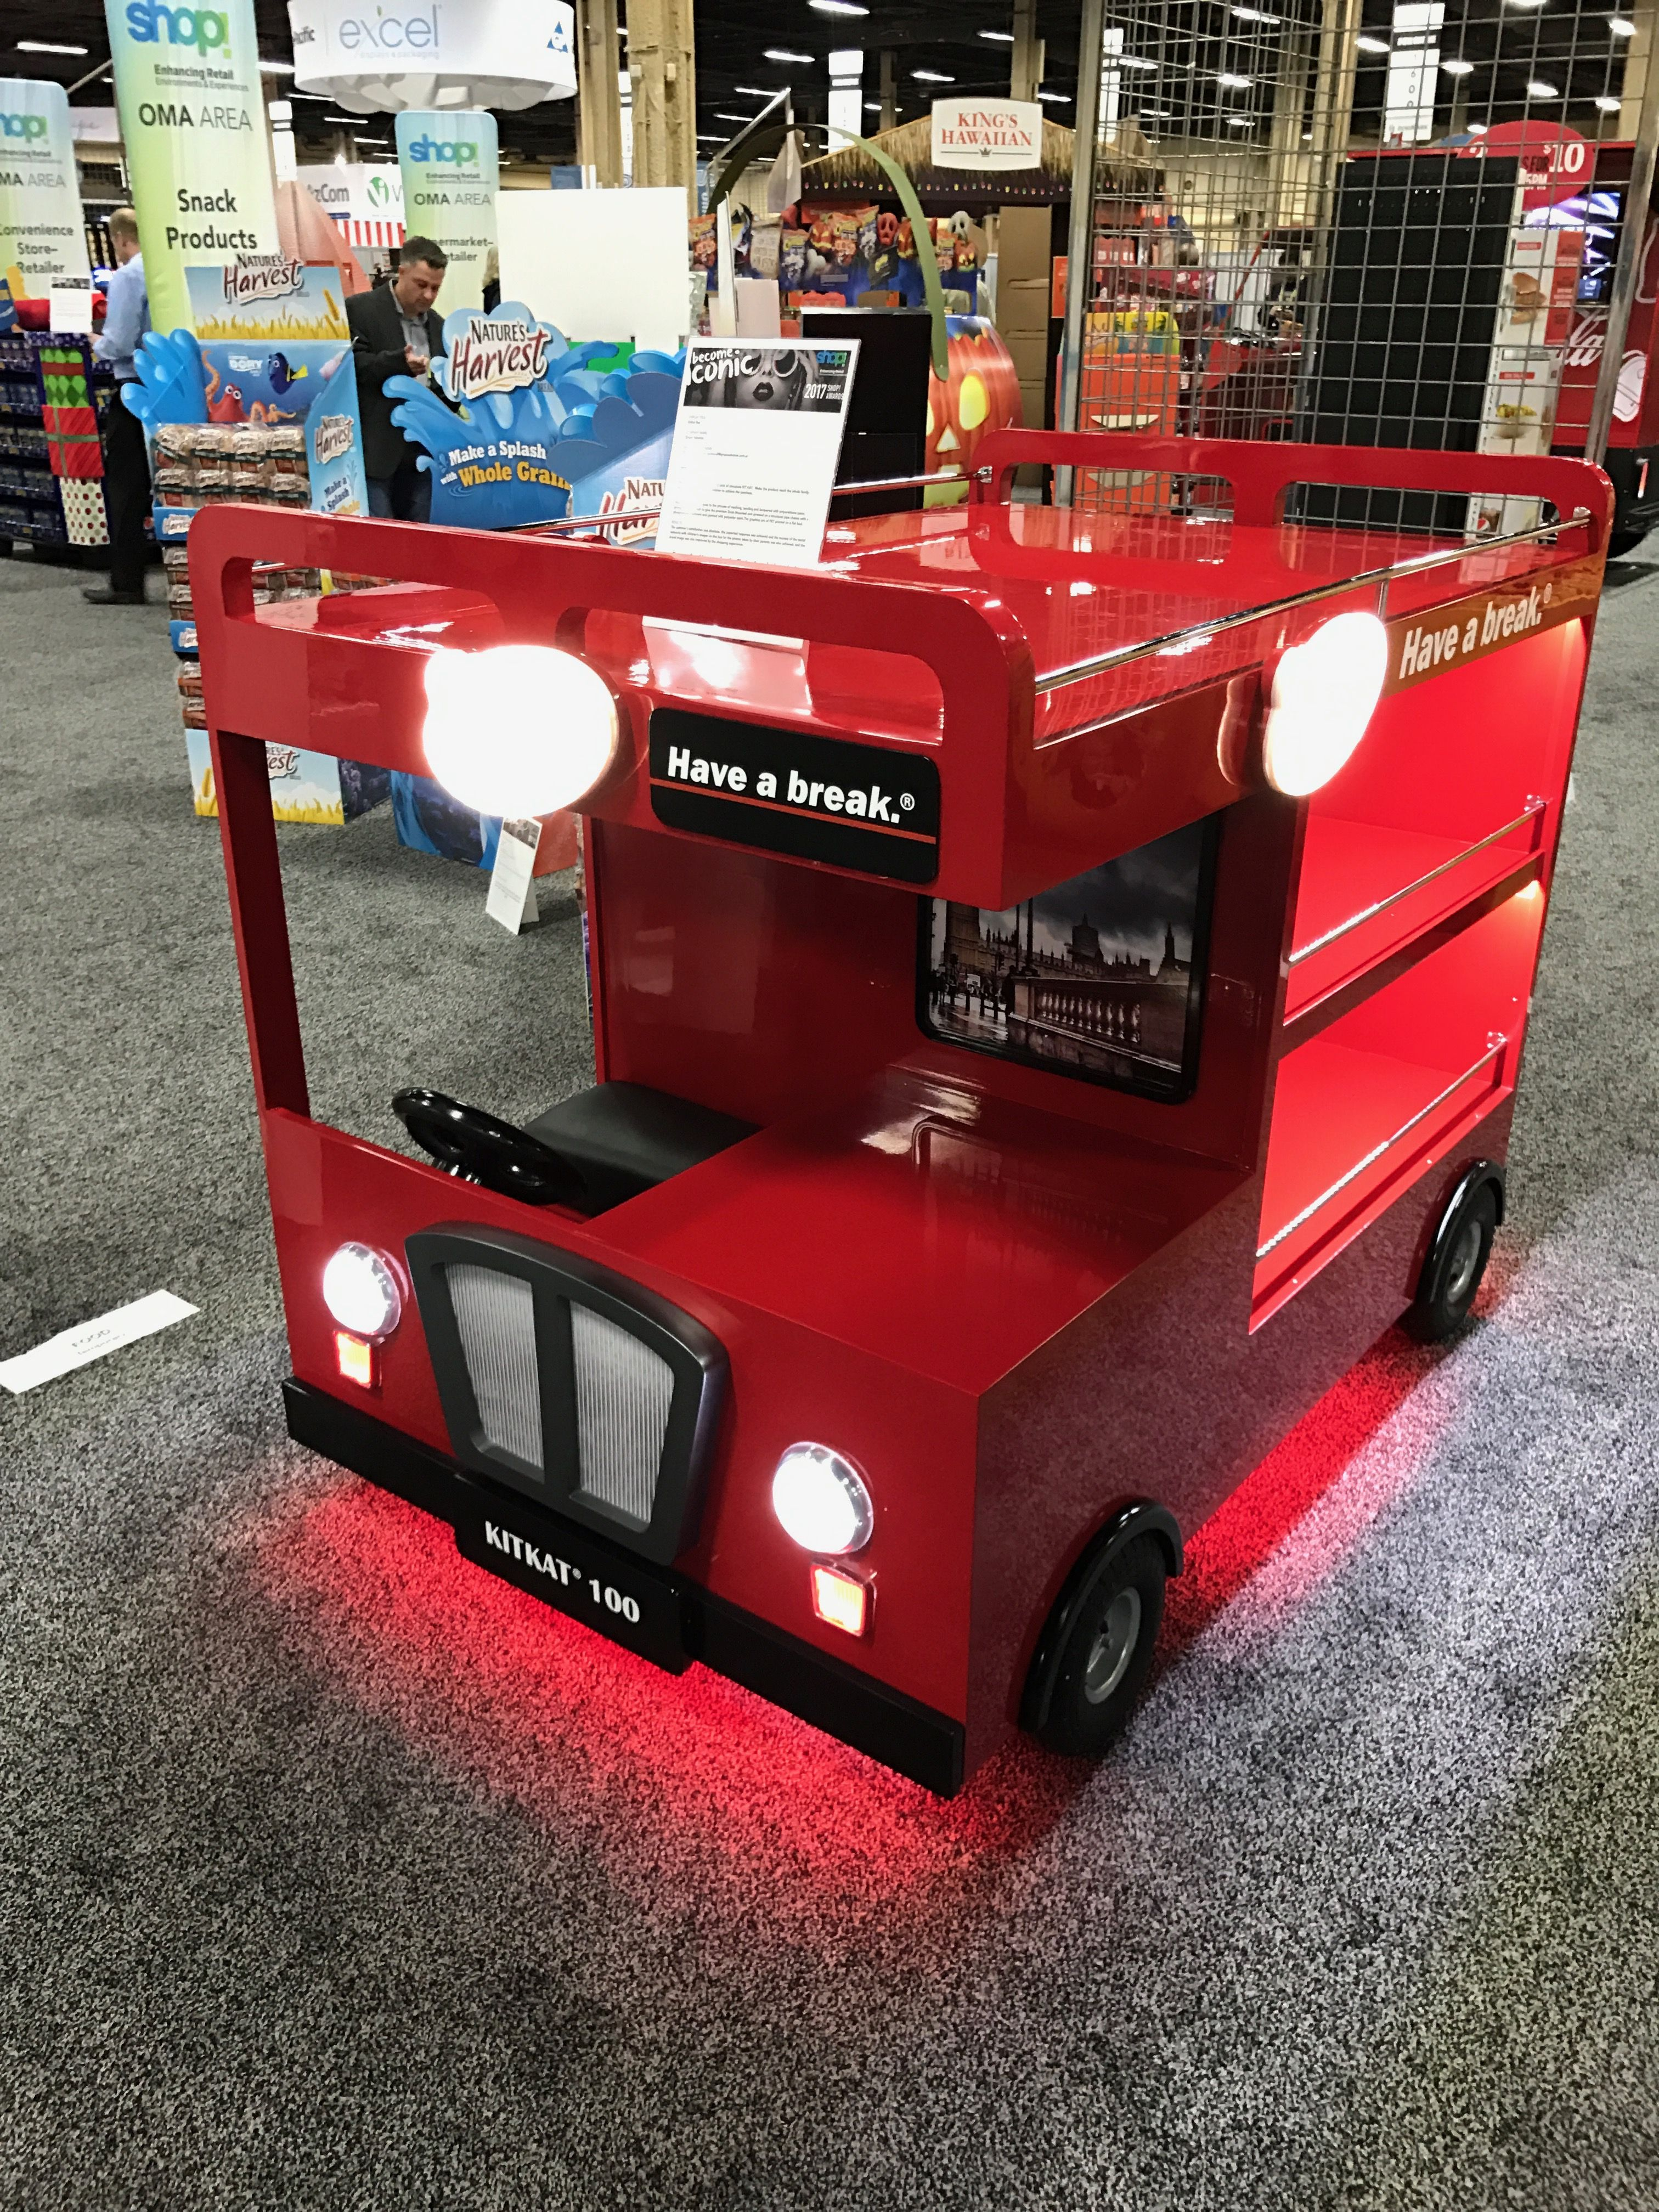 Looking To Purchase This Unit: Kit Kat Bus Free Standing Unit